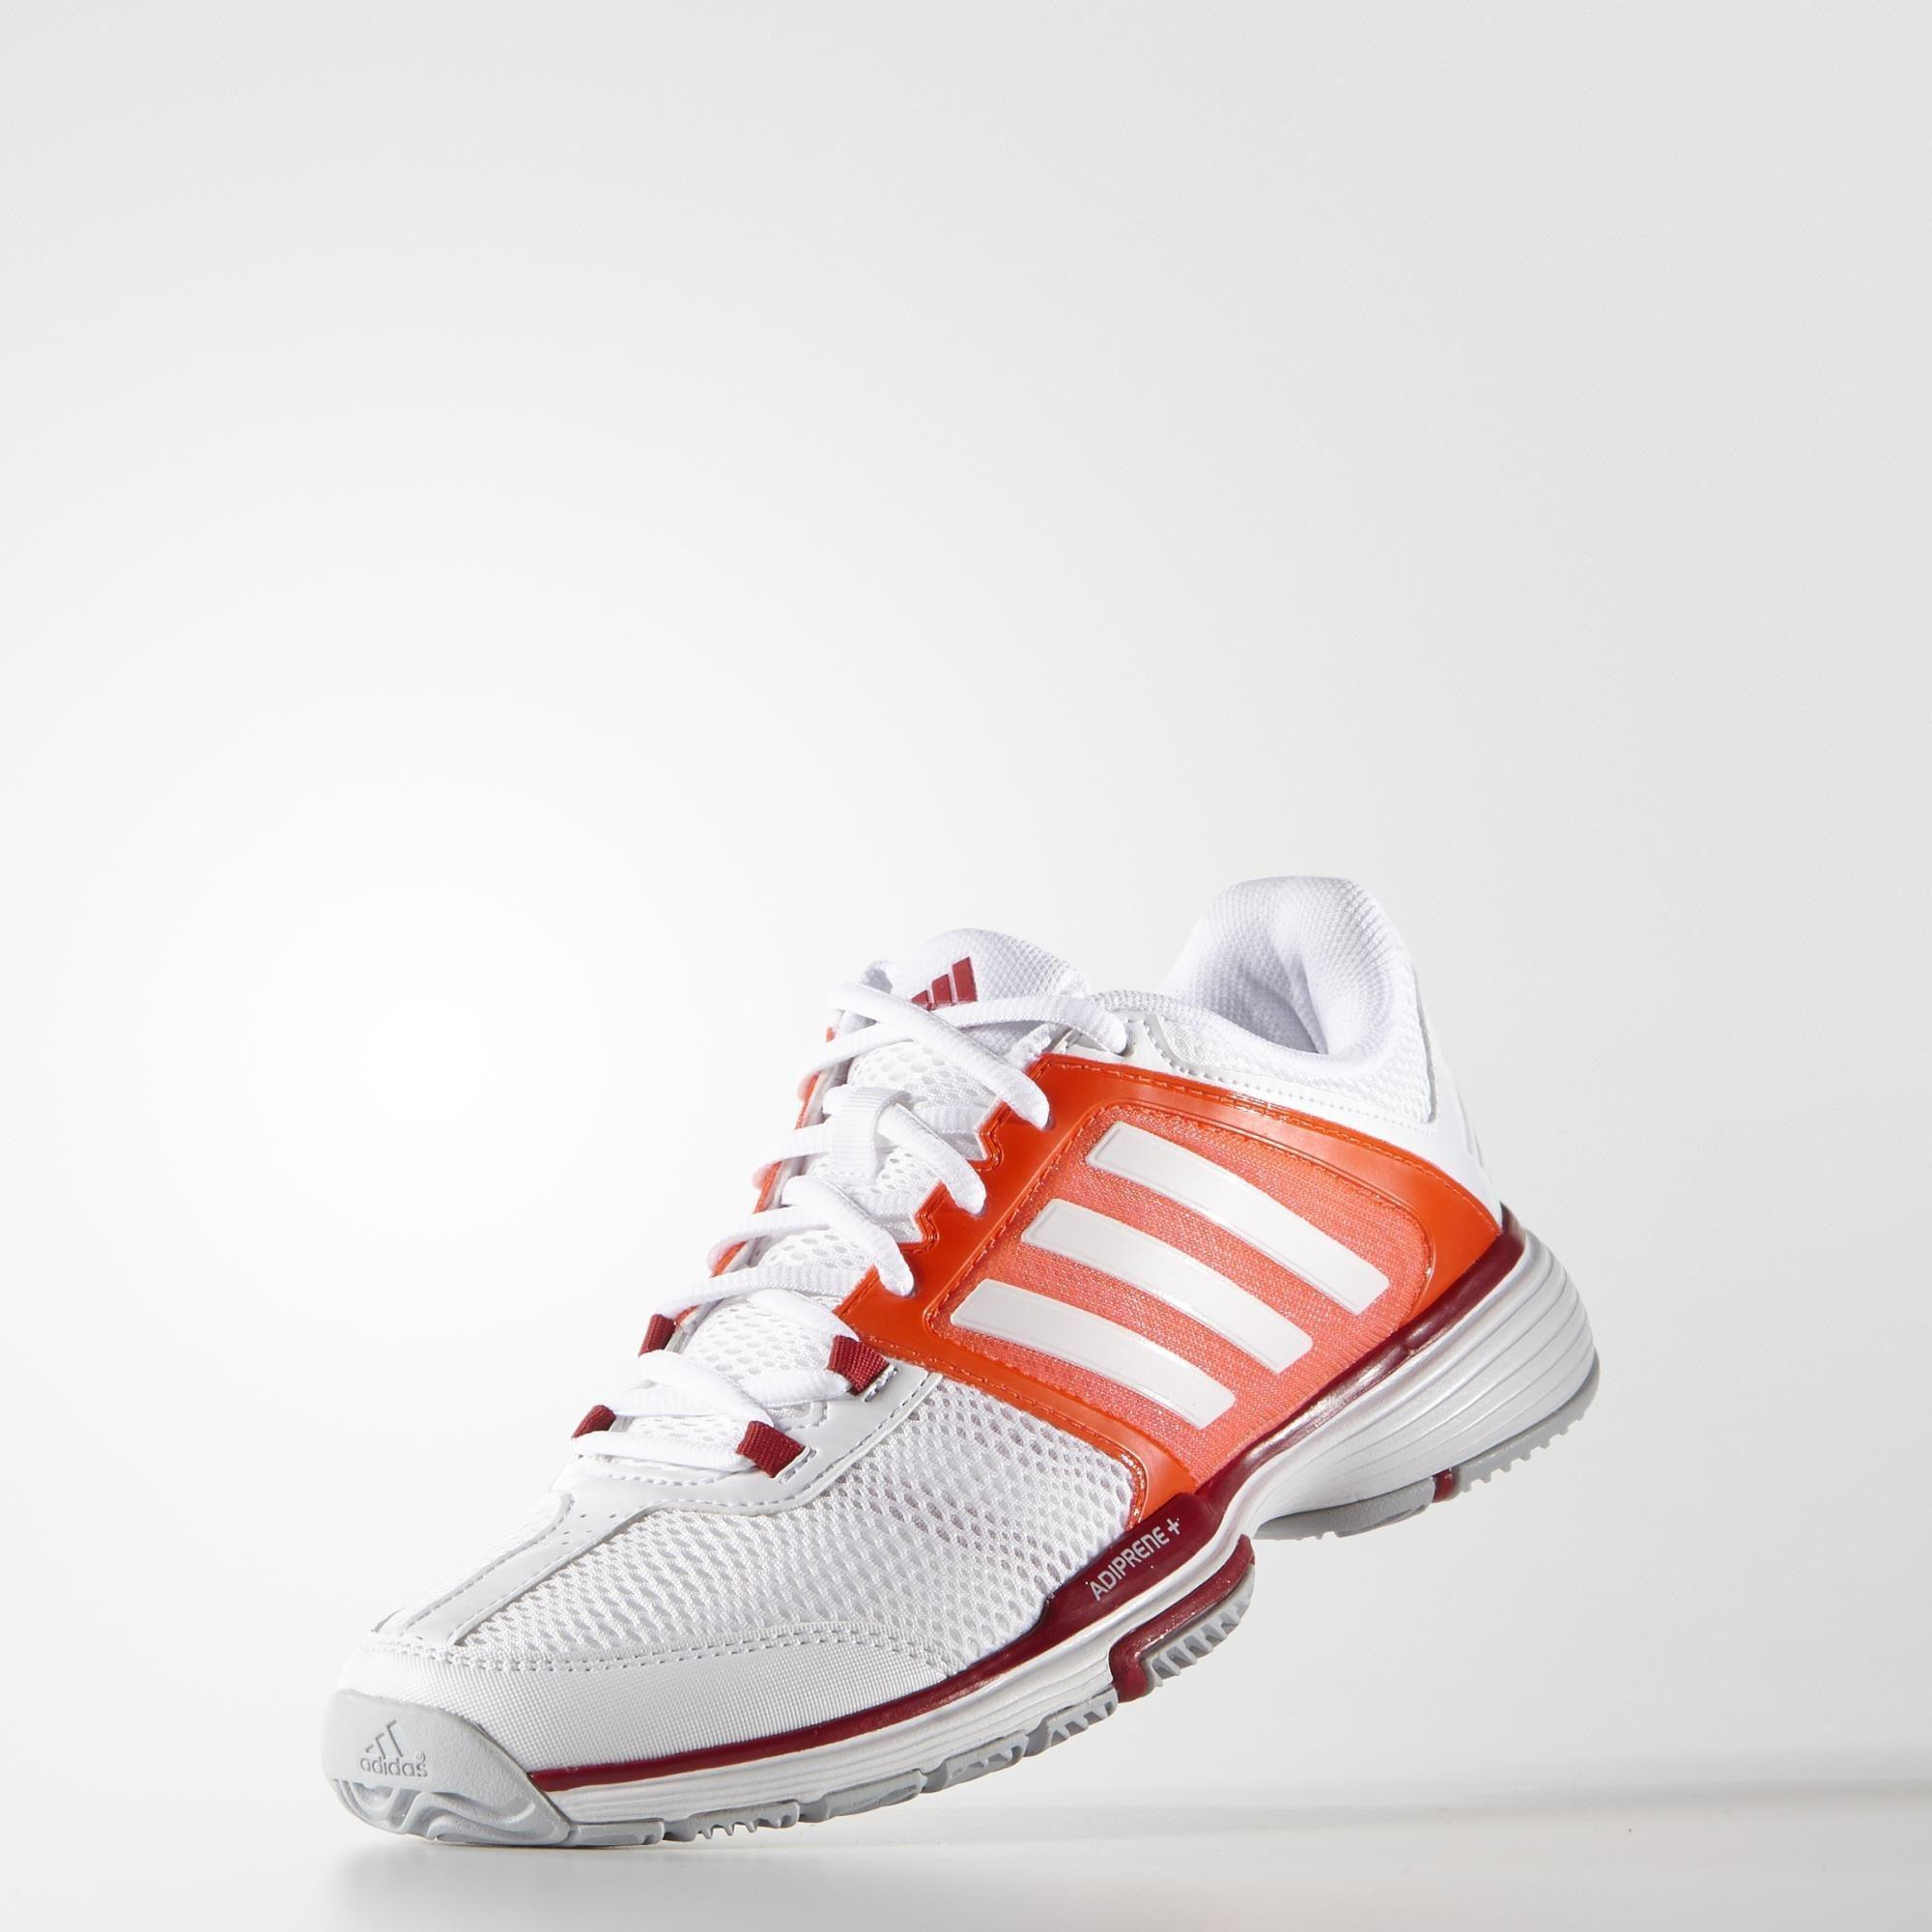 Shoes white solar red product code b23120 in stock 163 39 99 inc vat